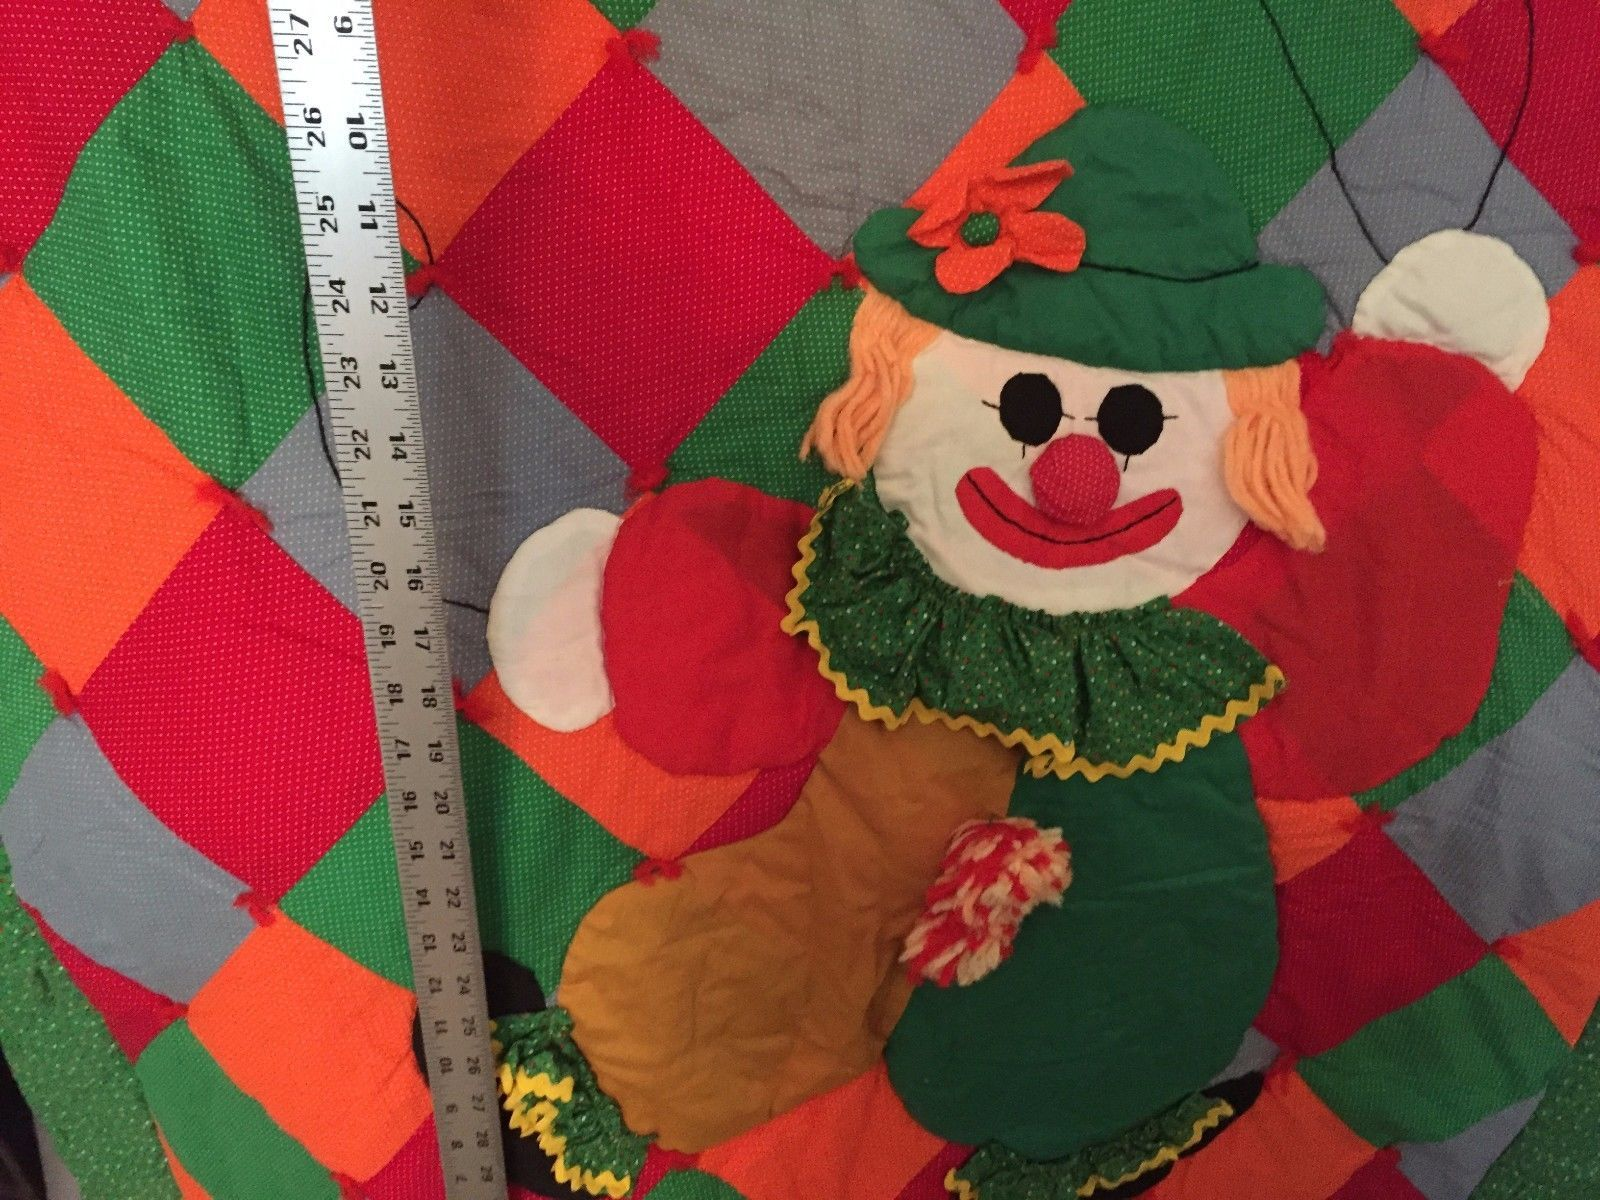 VINTAGE Handmade Clown Quilt Wall Hanging Child Crib Toddler Bright Colors 19951